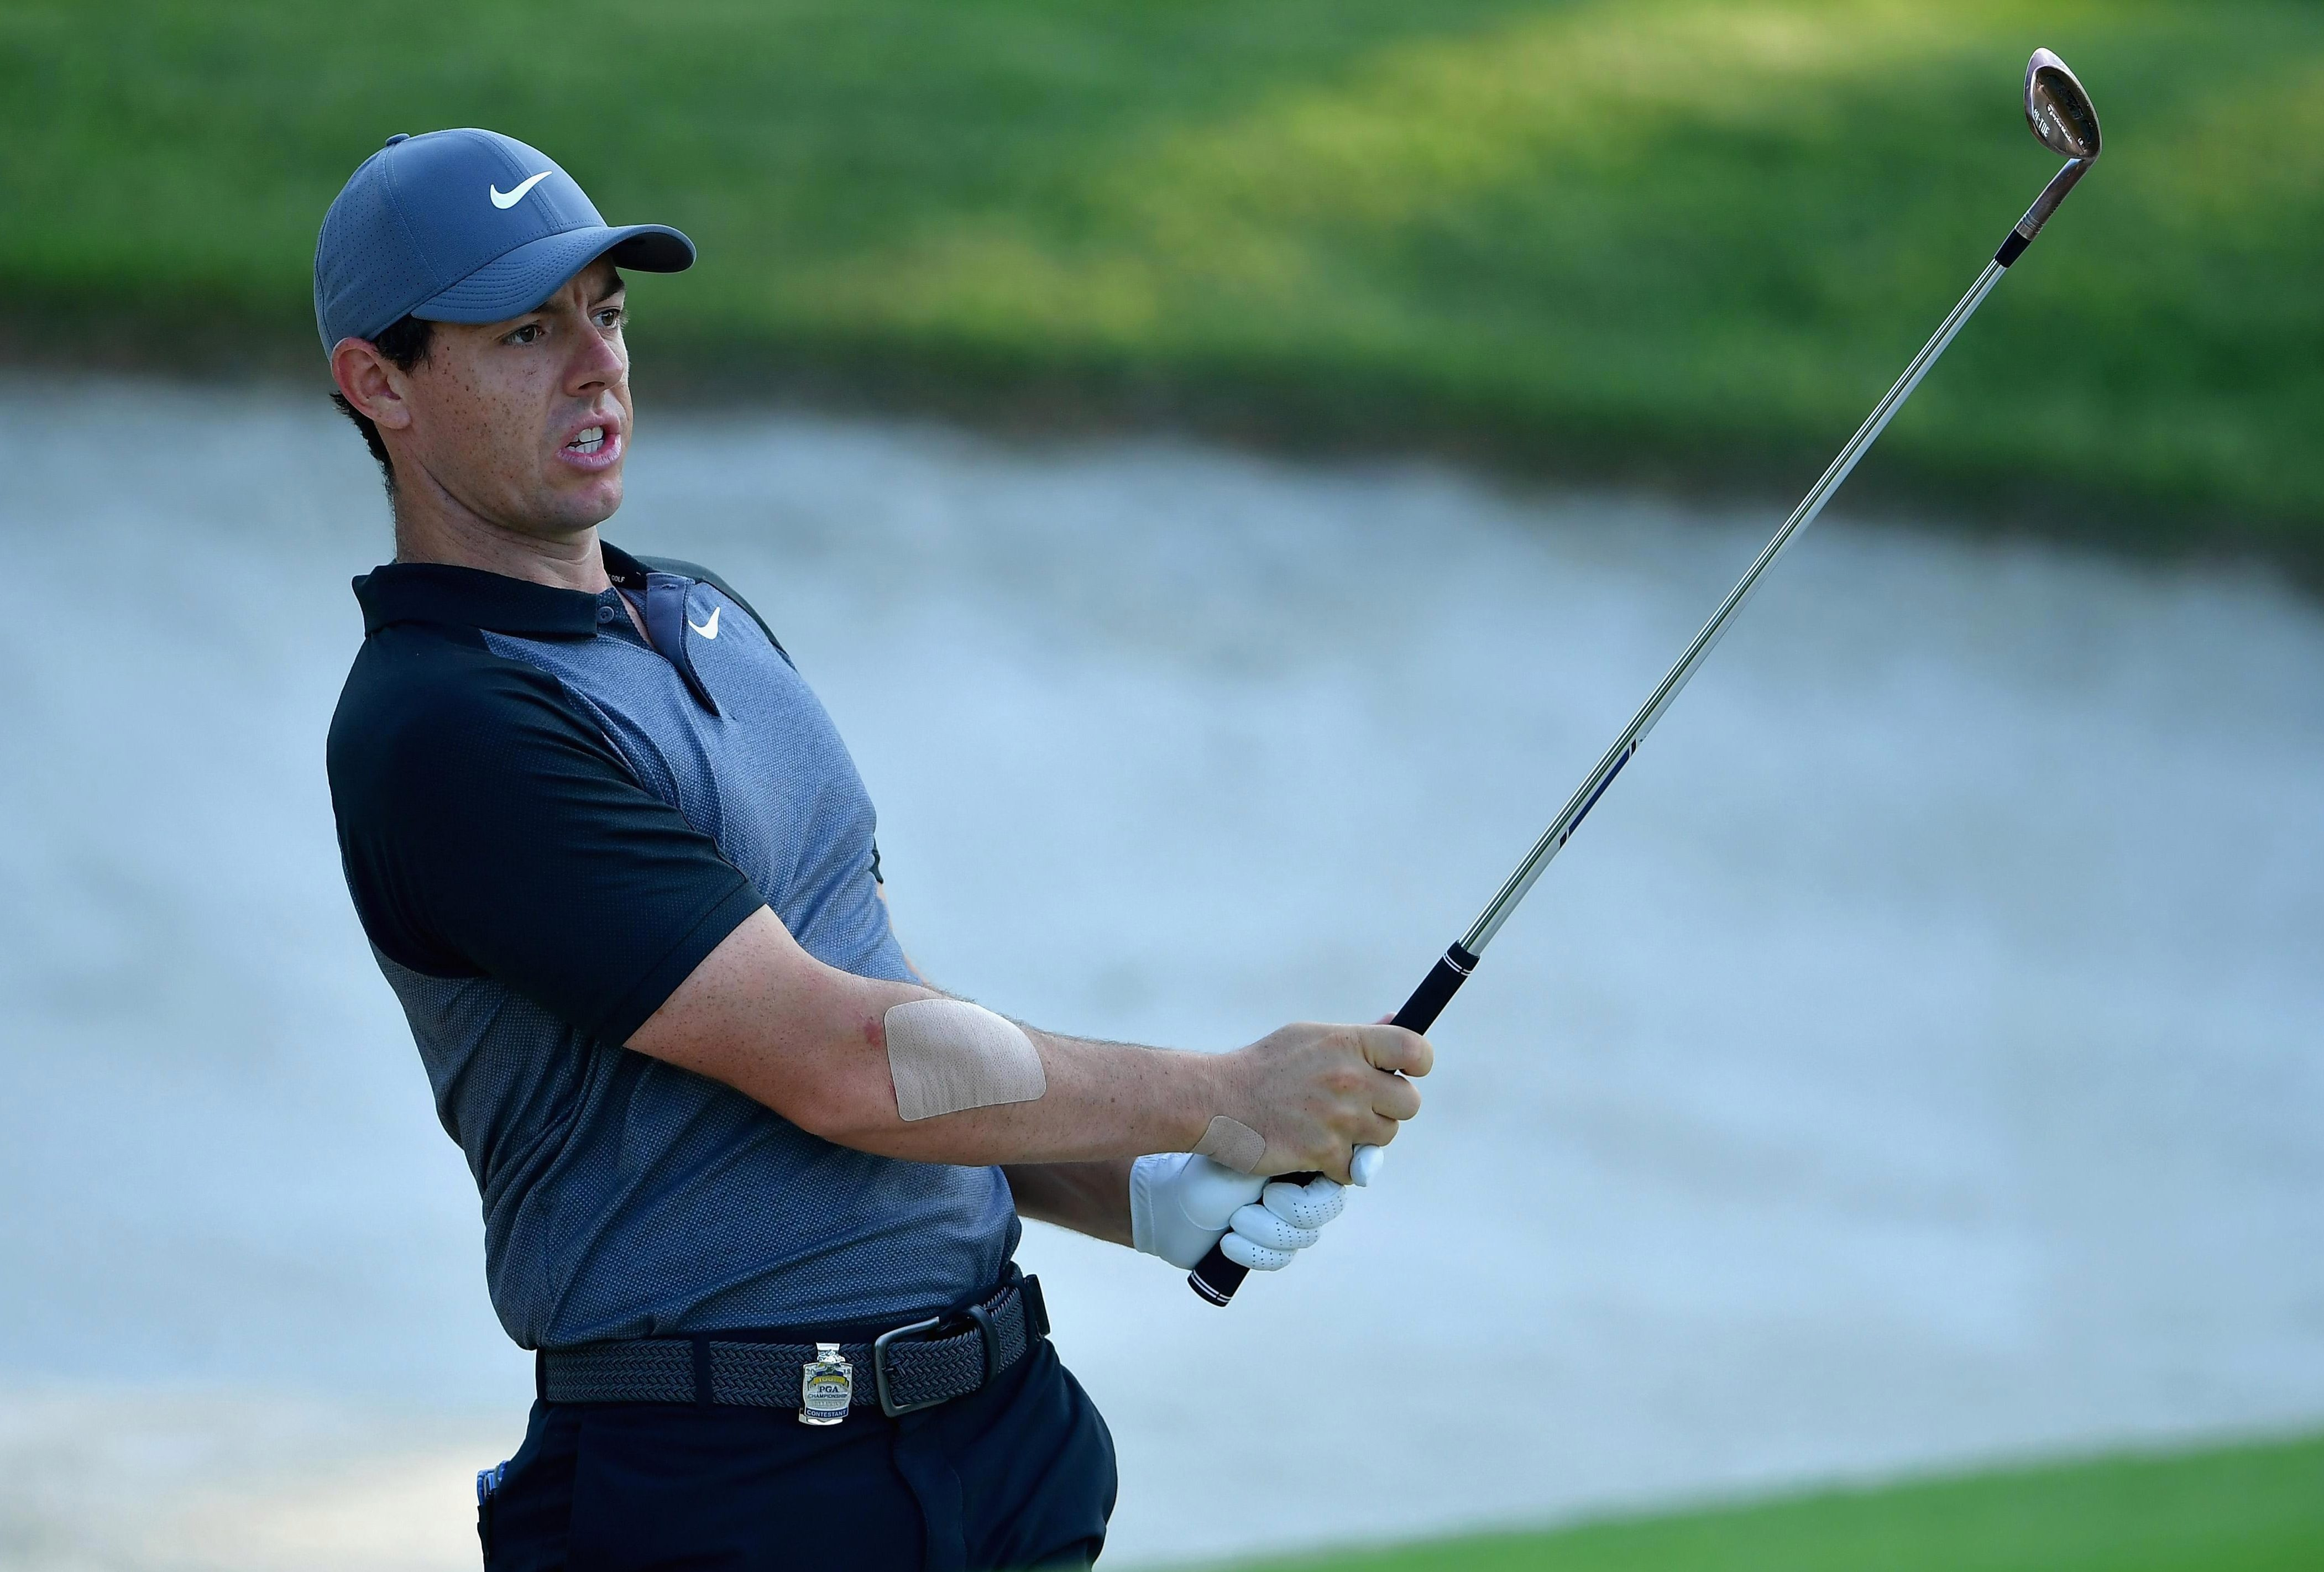 Big-armed Rory McIlroy must master his short game if he is to cash in at the USPGA Championships